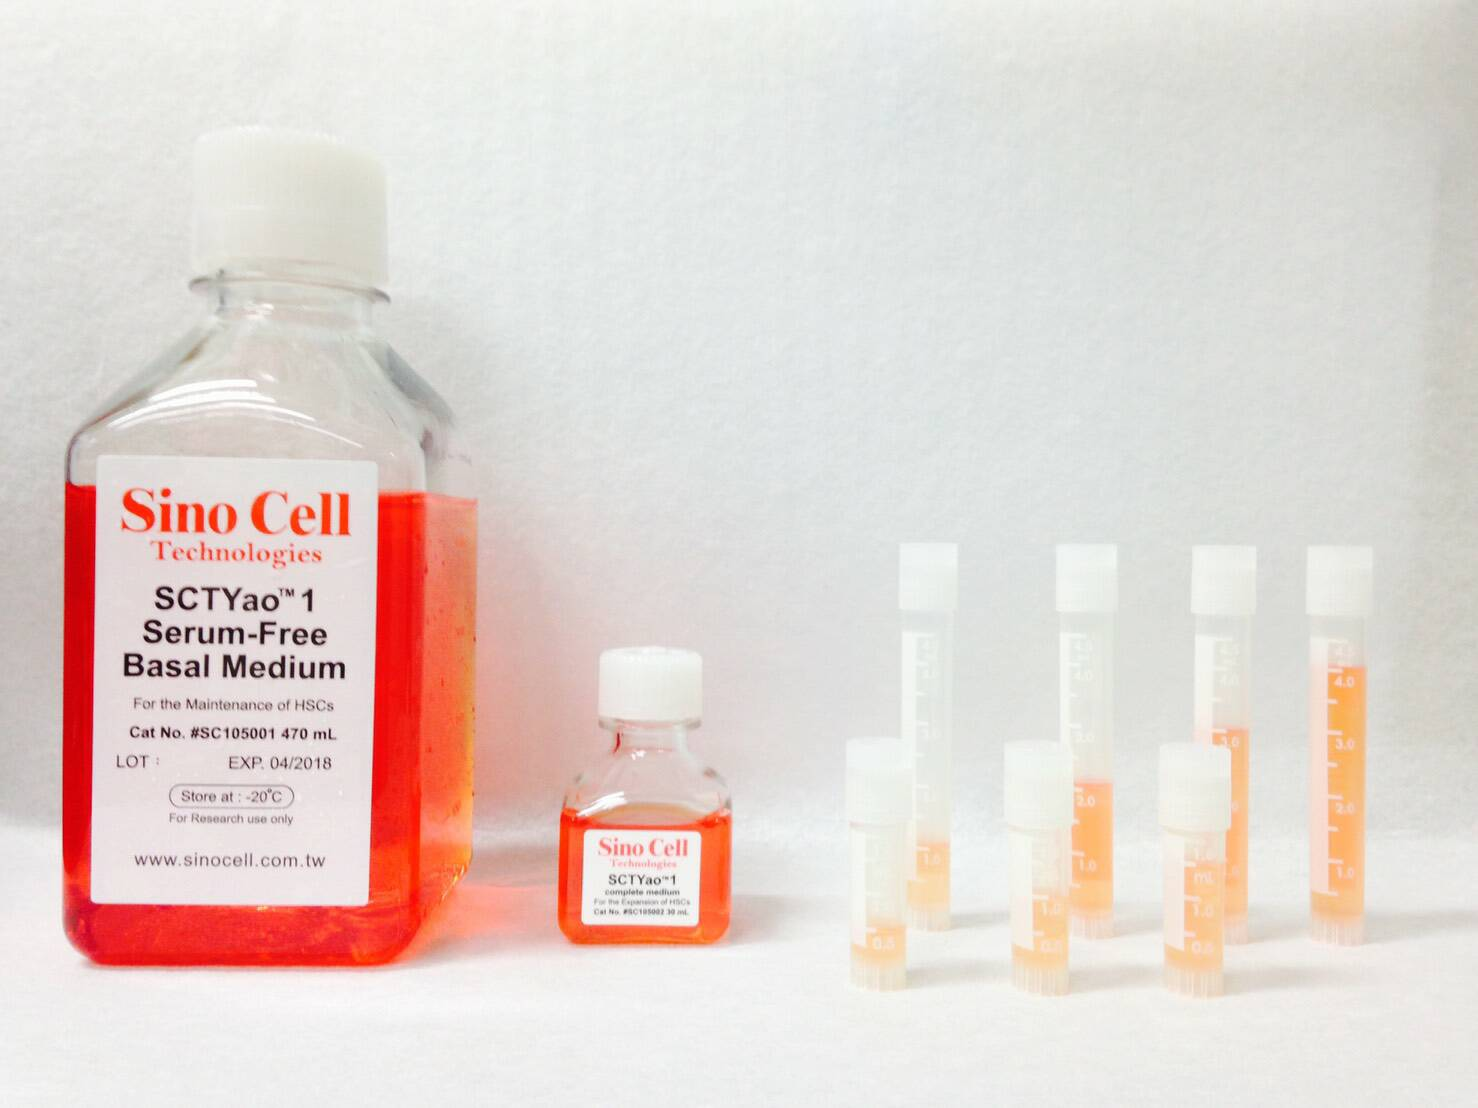 Integrated systems of ex vivo expansion, induction and cryopreservation of adult stem cells for cell therapy and immunotherapy